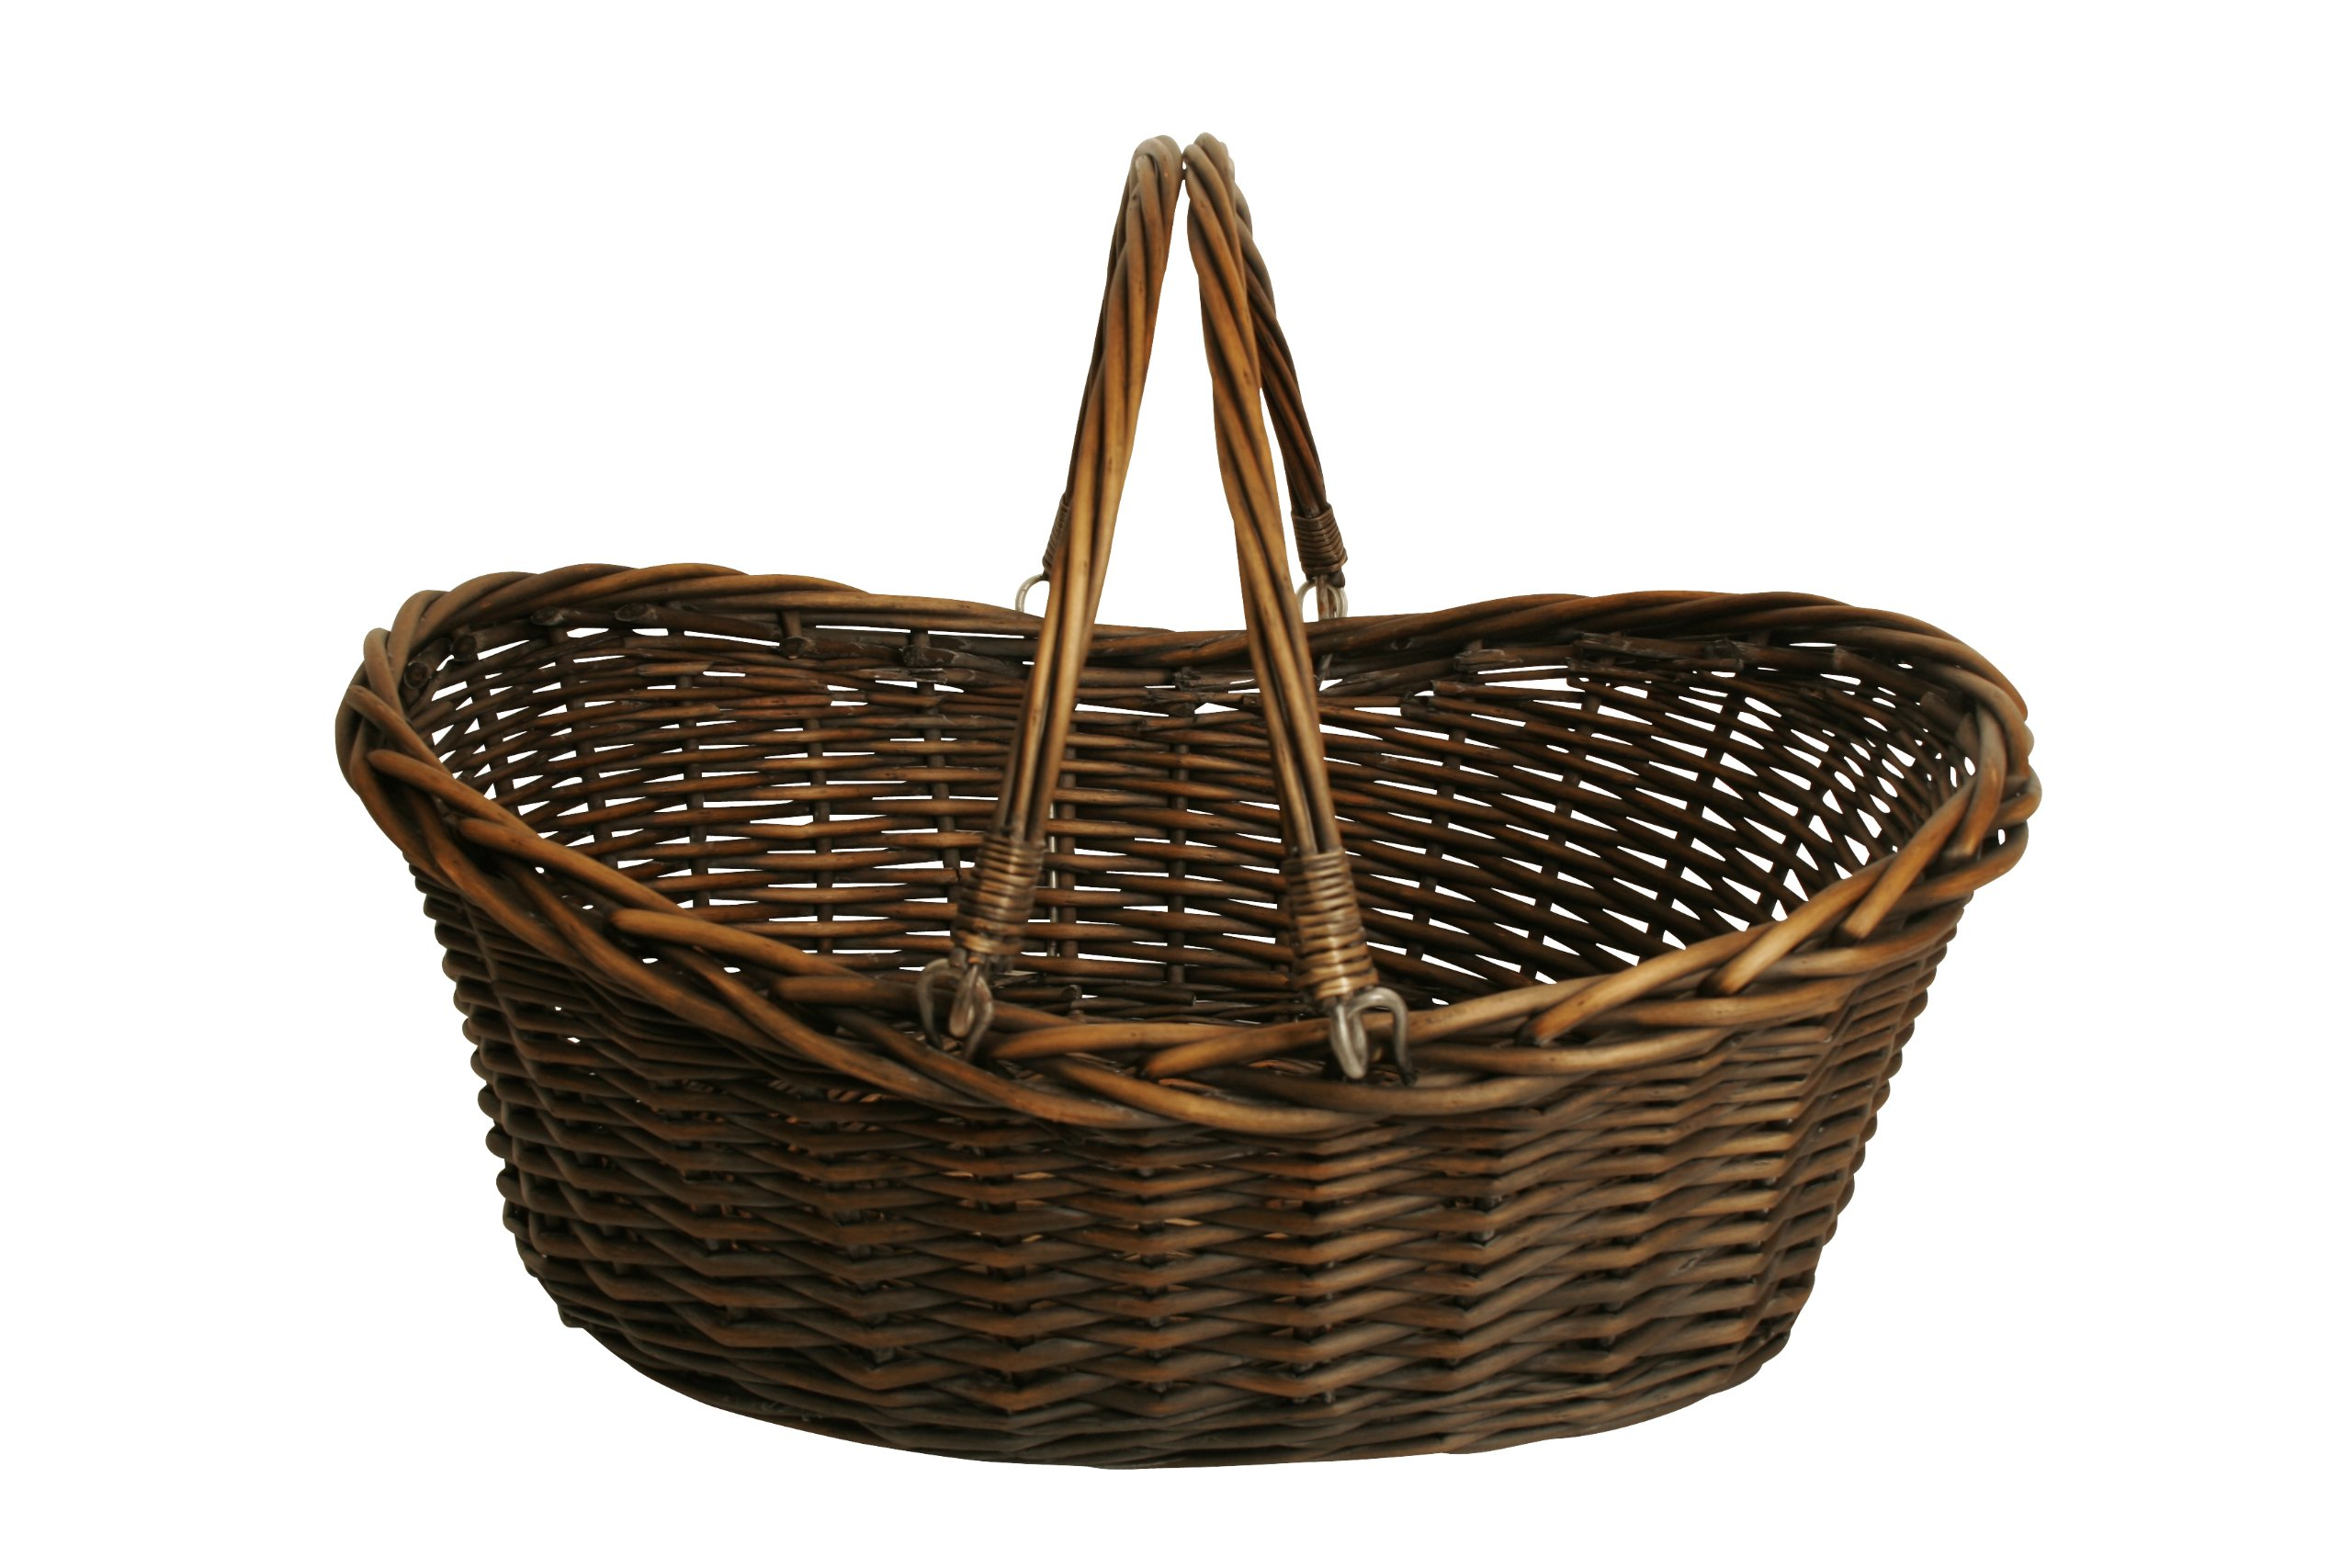 "Wald Imports Brown Willow 19.5"" Decorative Storage Basket - Dark Brown stain Hand Woven from natural Materials Woven willow basket with folding handles - living-room-decor, living-room, baskets-storage - 81Mm5j1UvaL -"